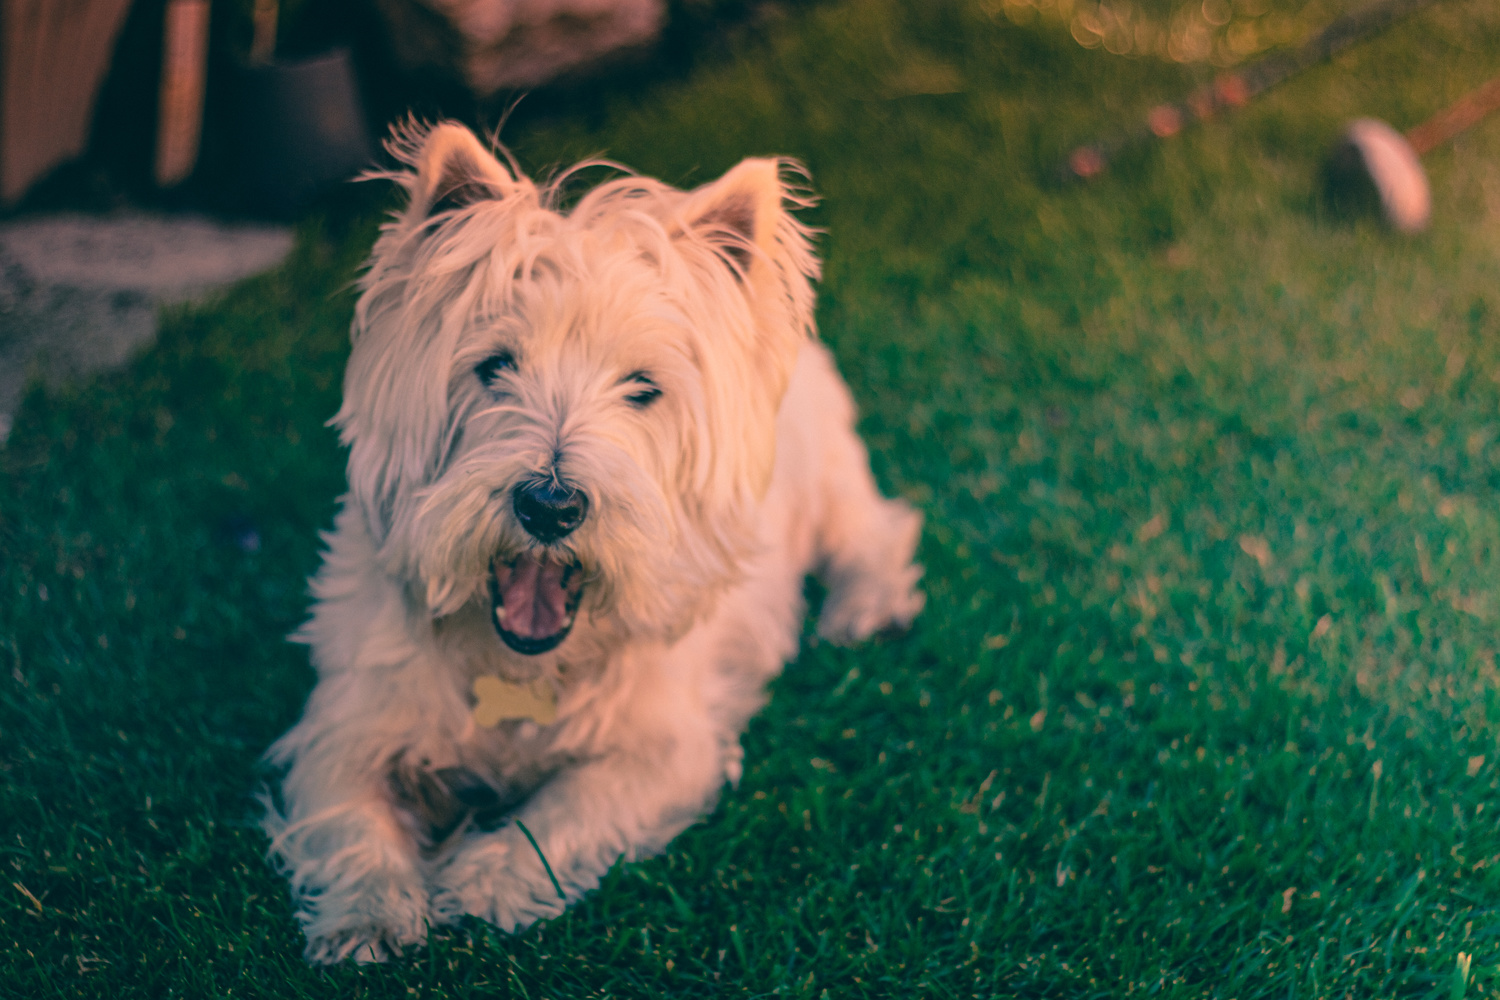 West Highland Terrier by Phil Daley